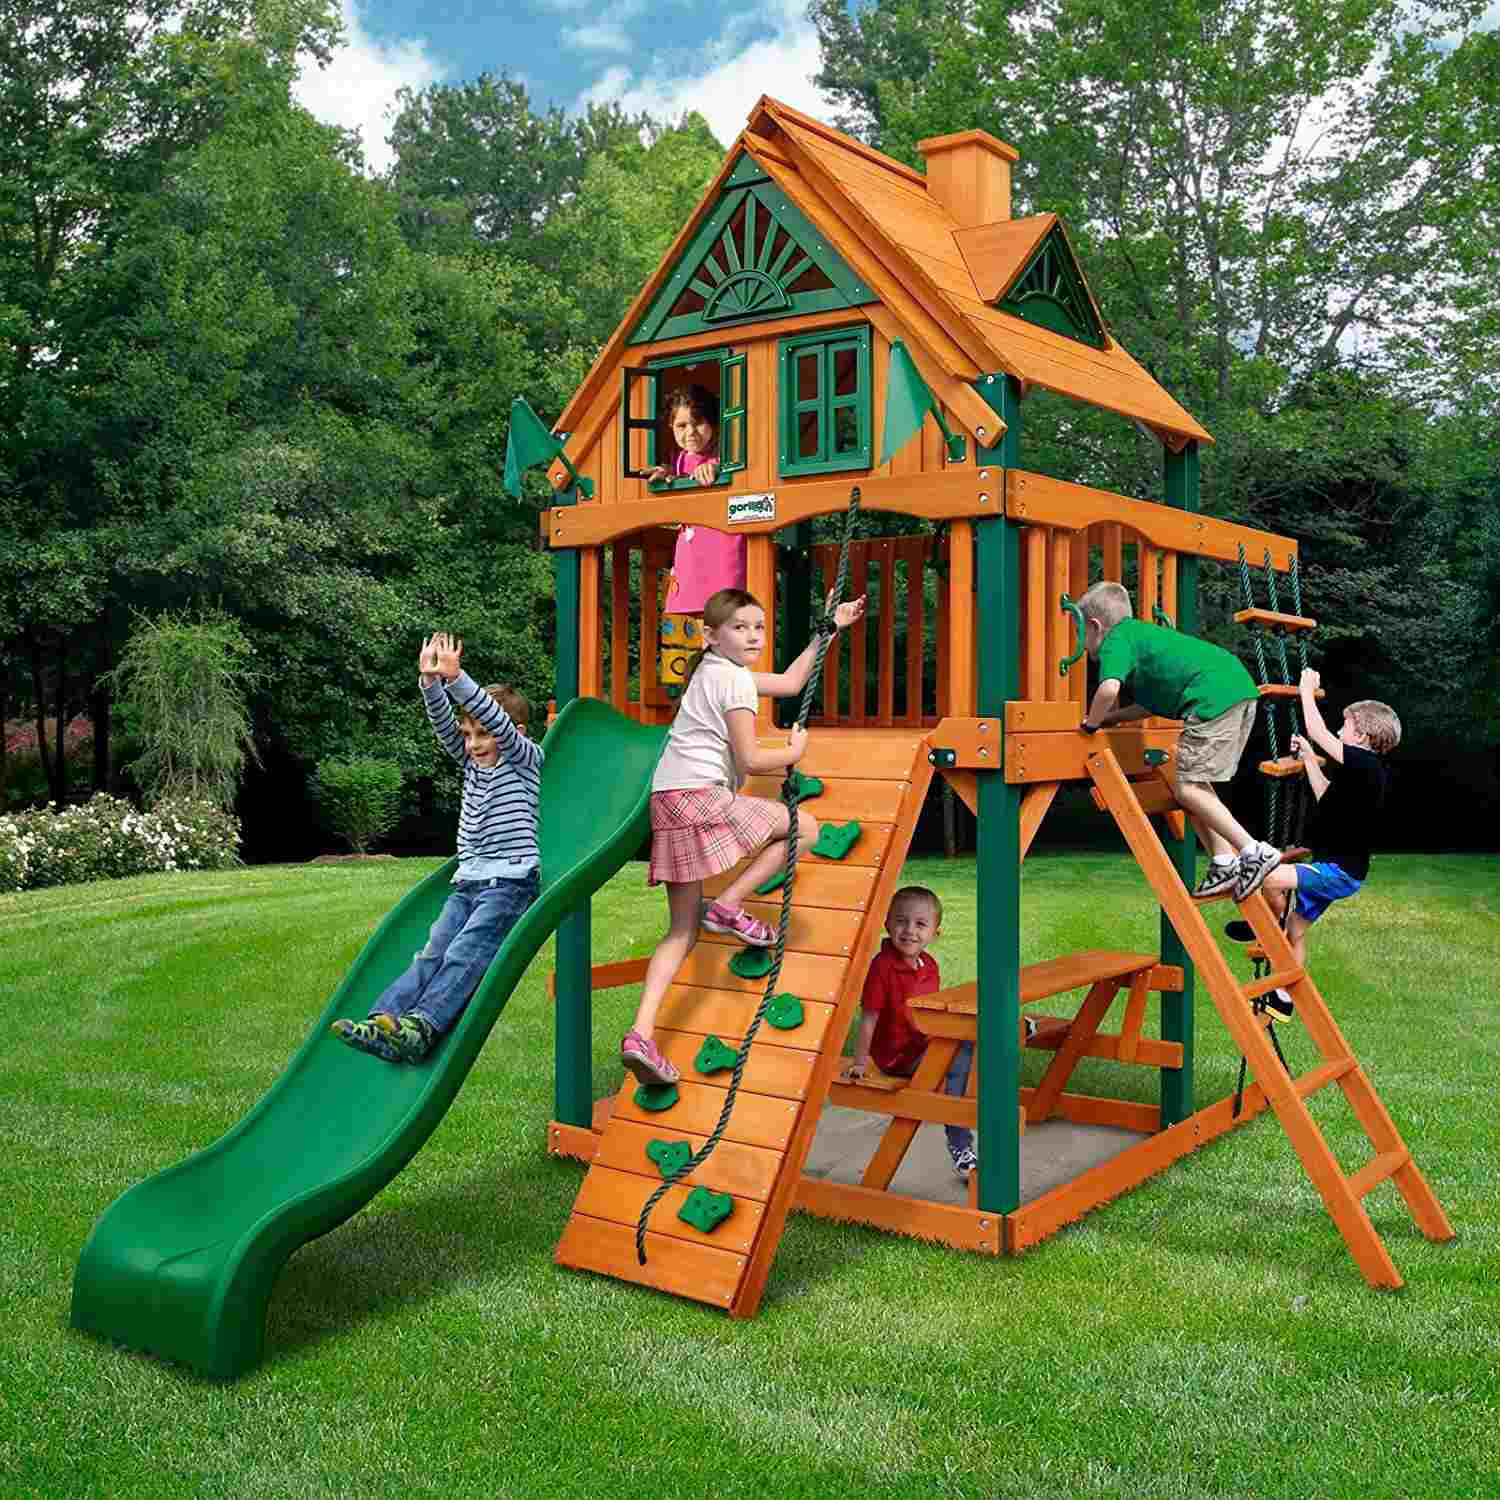 A picture of the Gorilla Playsets Chateau Treehouse Tower Swing Set - The 8 Best Wooden Swing Sets And Playsets To Buy In 2018